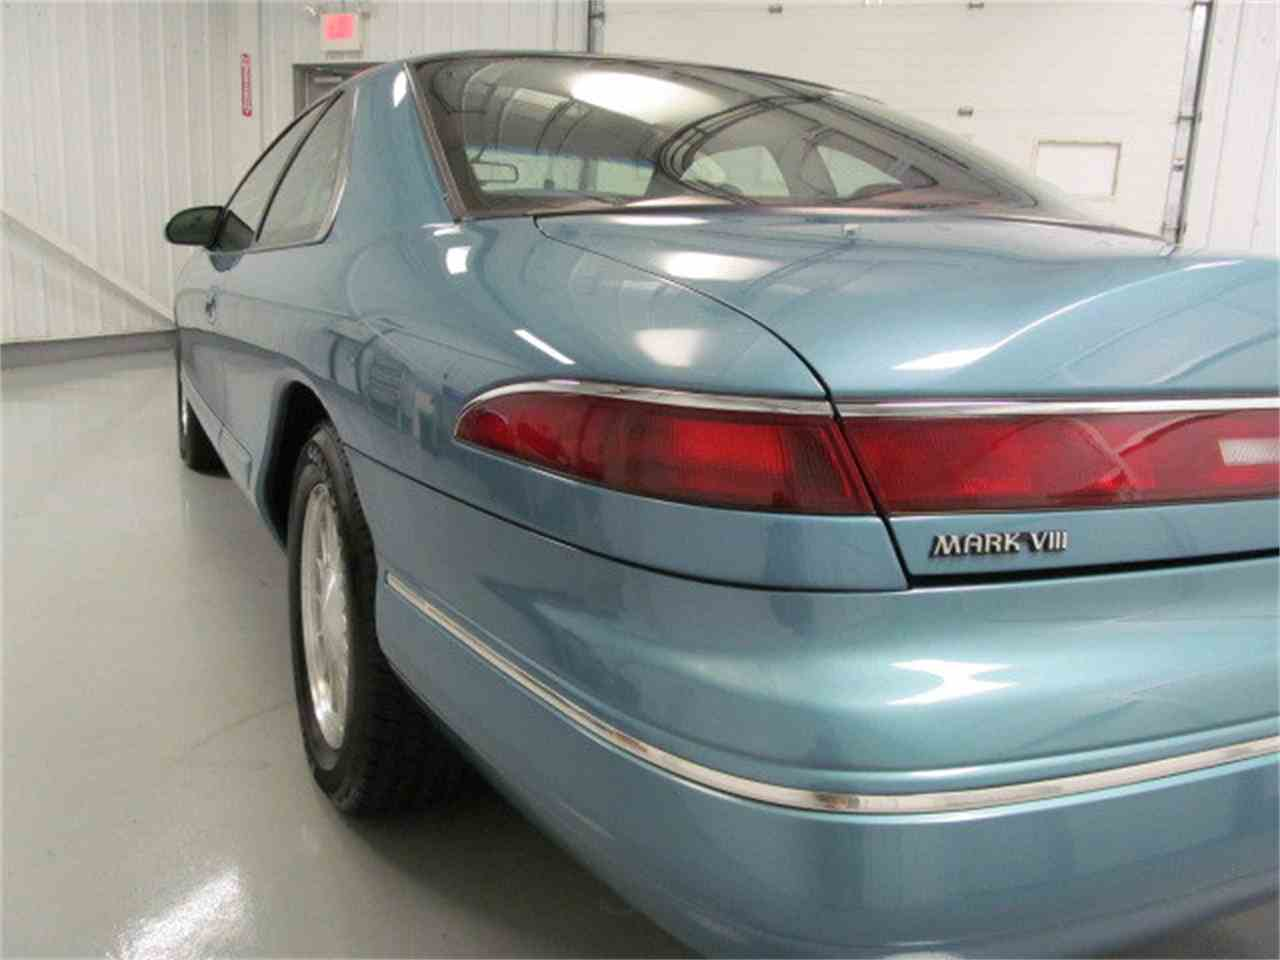 Large Picture of '93 Lincoln Mark VIII located in Virginia - $9,900.00 Offered by Duncan Imports & Classic Cars - JL9Z